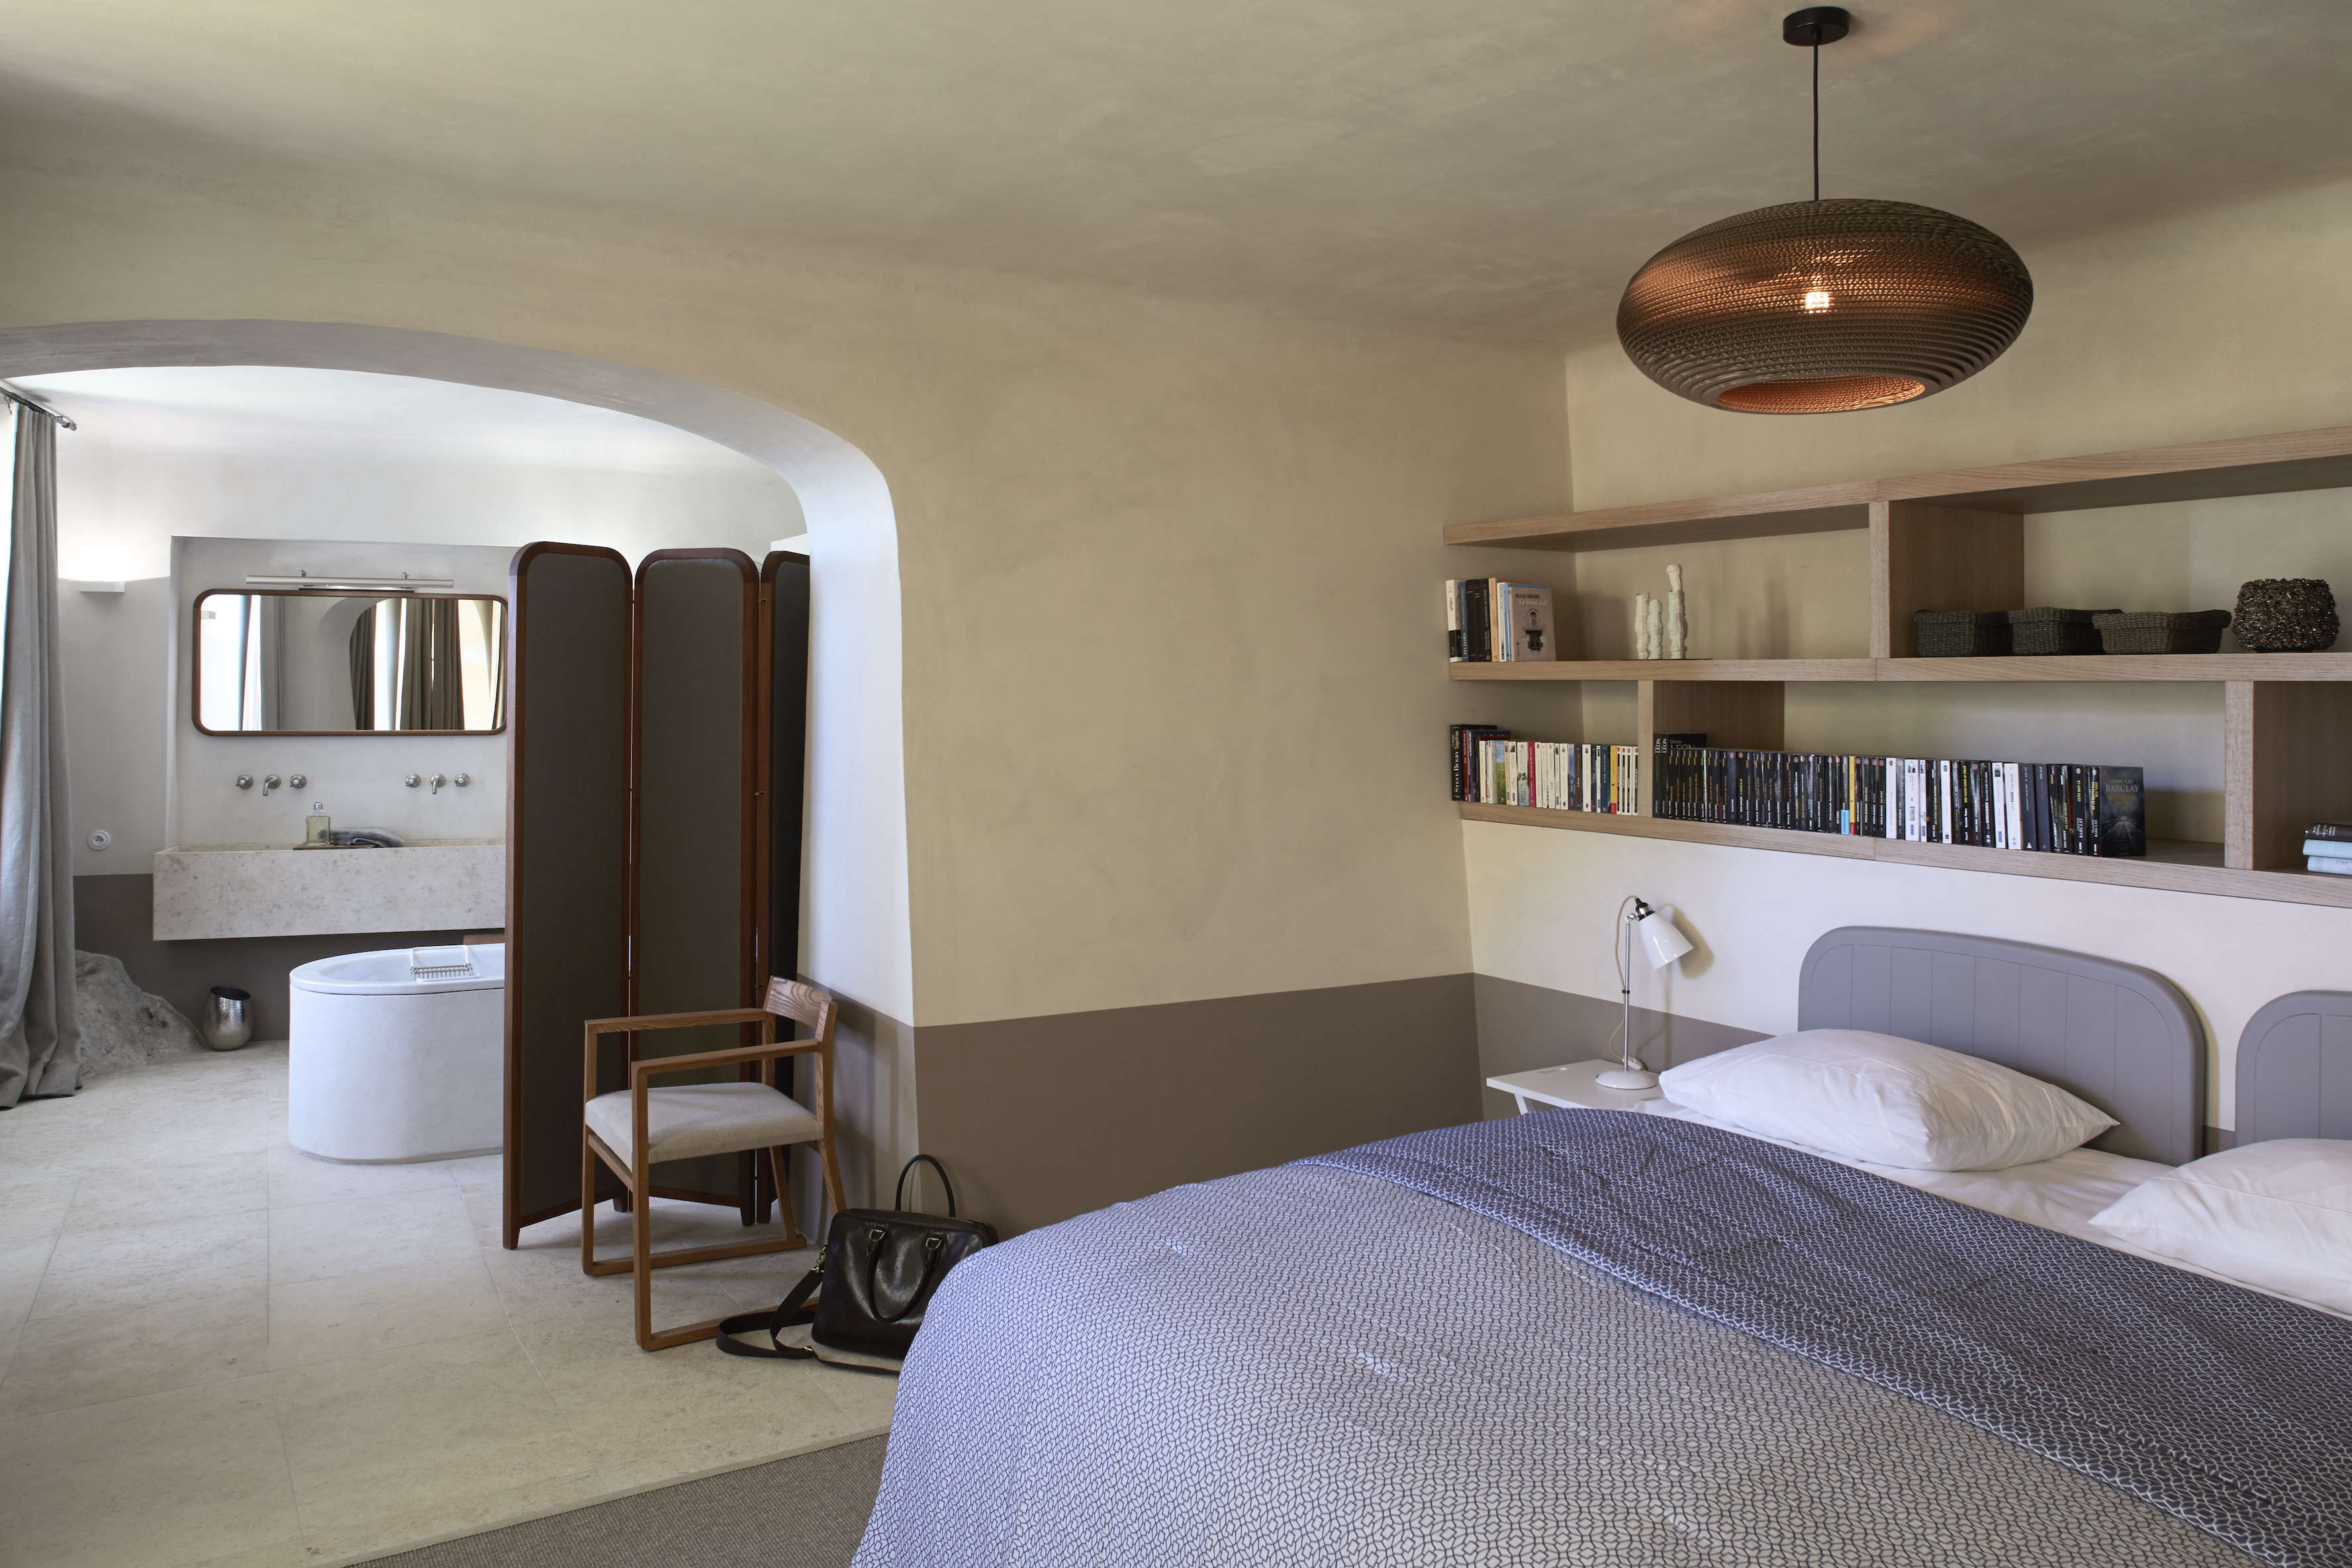 The guest room has an en suite bath divided by an archway and folding screen. The painted pine double headboard, Barnes tells us, was &#8